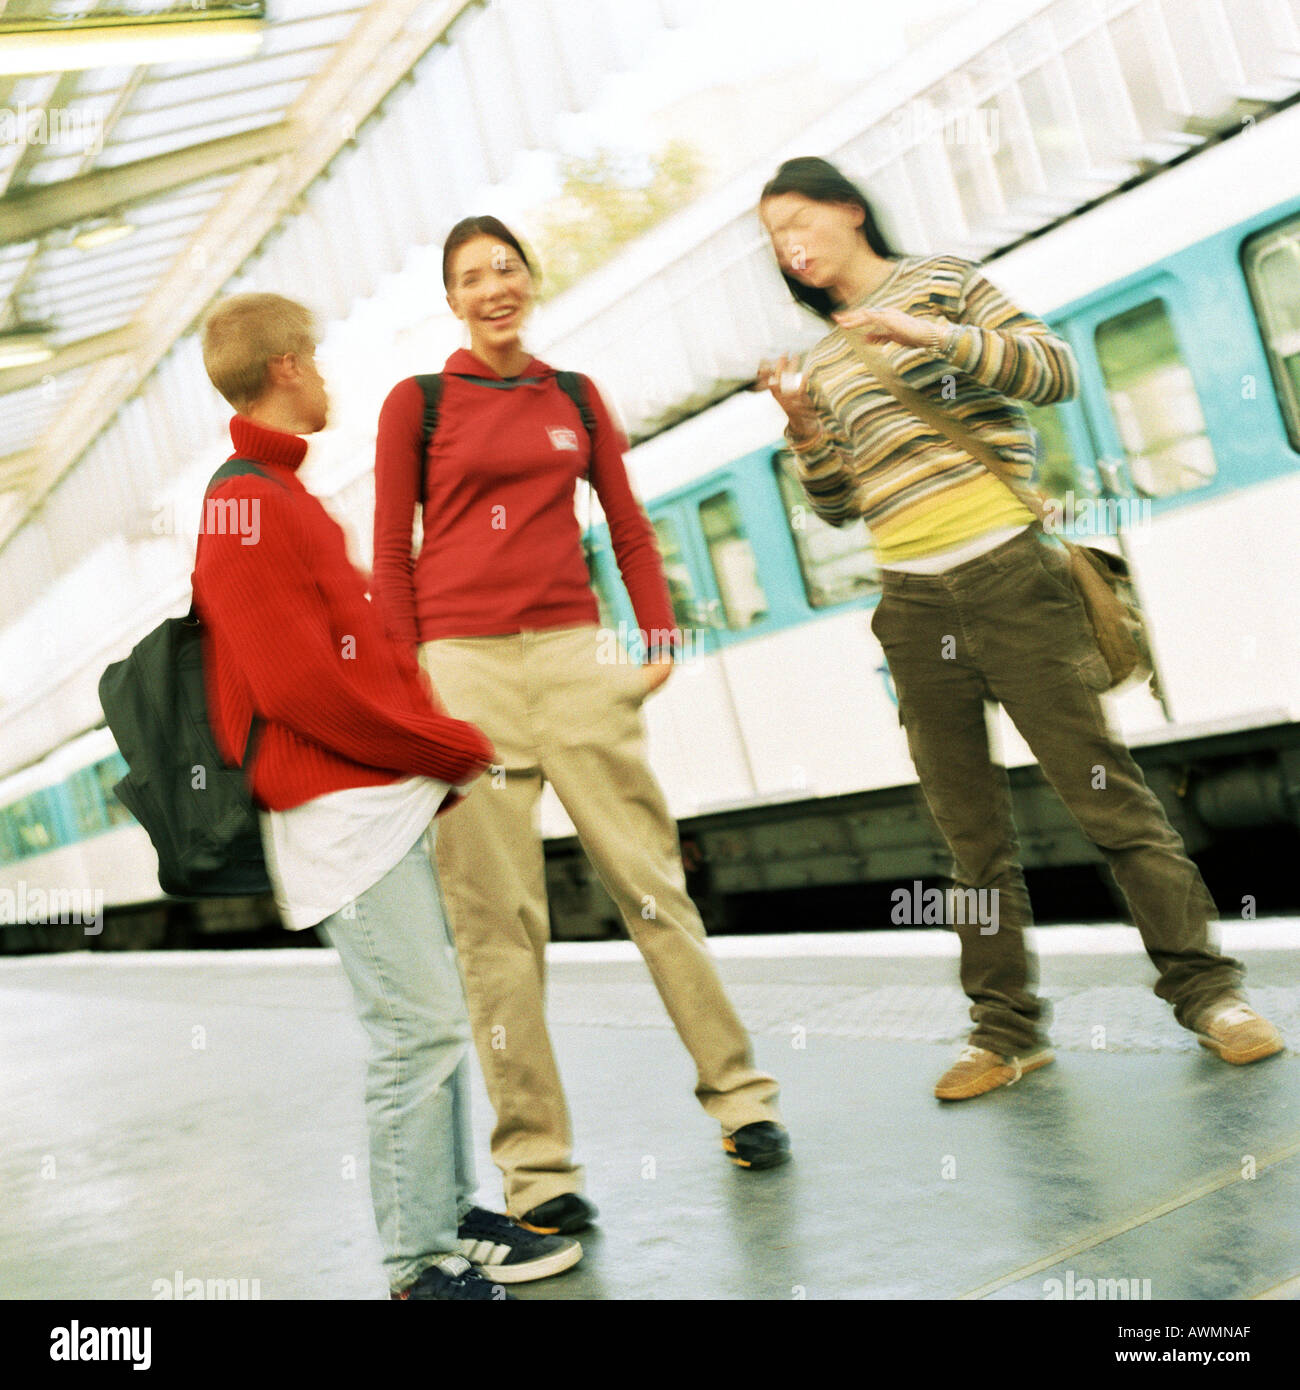 Three teenagers standing on subway platform, blurred - Stock Image